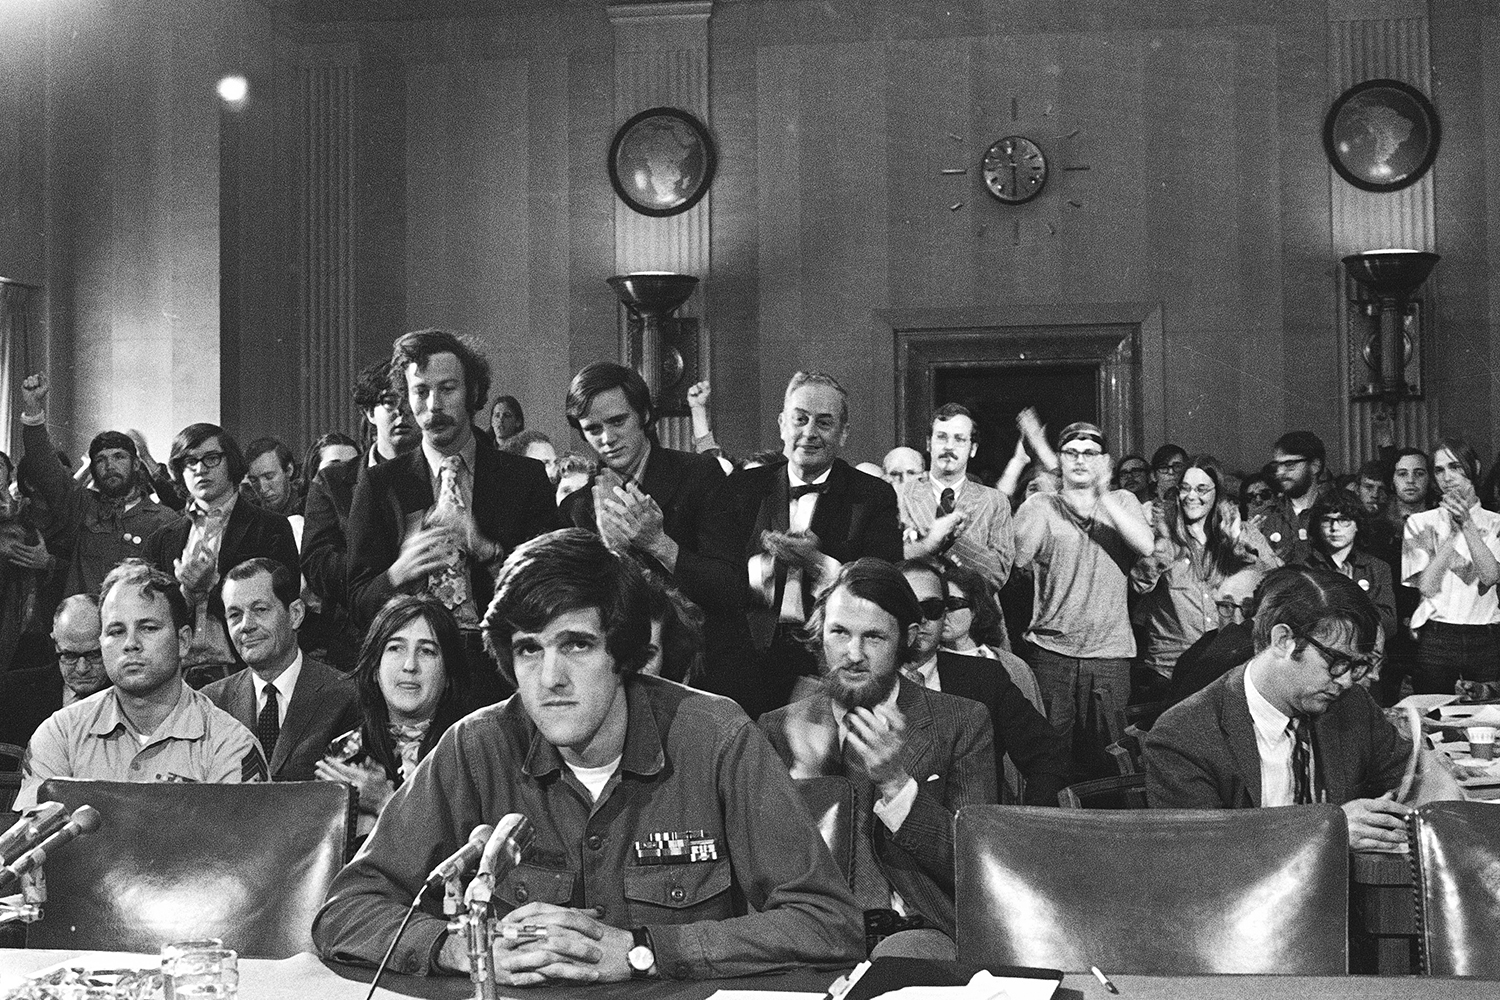 John Kerry speaks about the Vietnam War in front of the Senate Foreign Relations Committee in 1971.